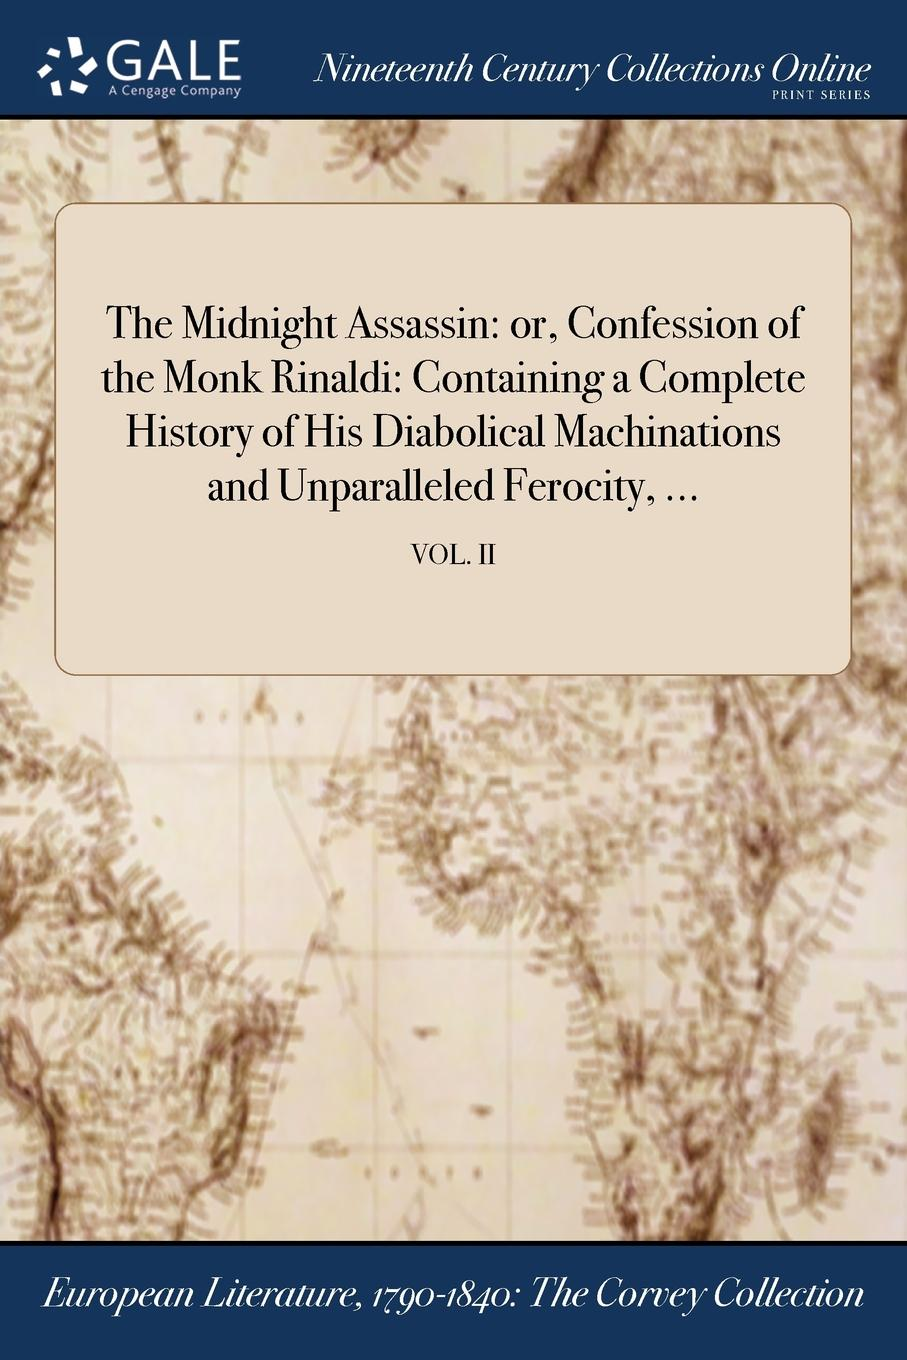 M. l'abbé Trochon The Midnight Assassin. or, Confession of the Monk Rinaldi: Containing a Complete History of His Diabolical Machinations and Unparalleled Ferocity, ...; VOL. II the complete short novels